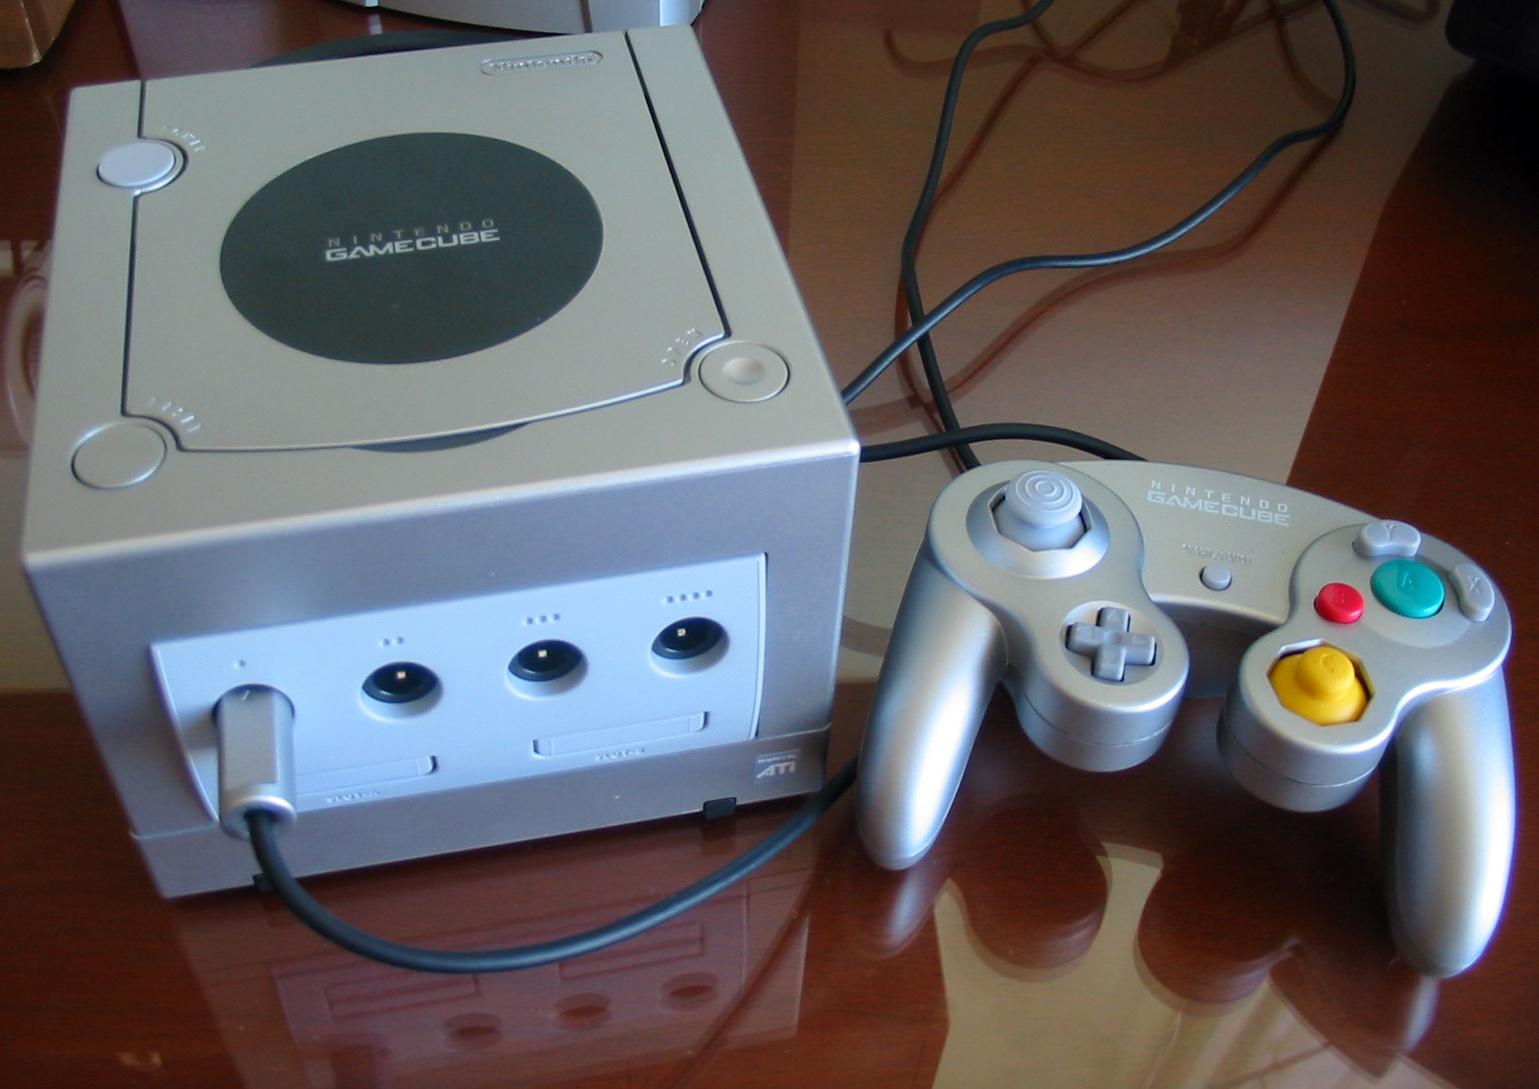 File:Nintendo Gamecube Silver.JPG - Wikimedia Commons